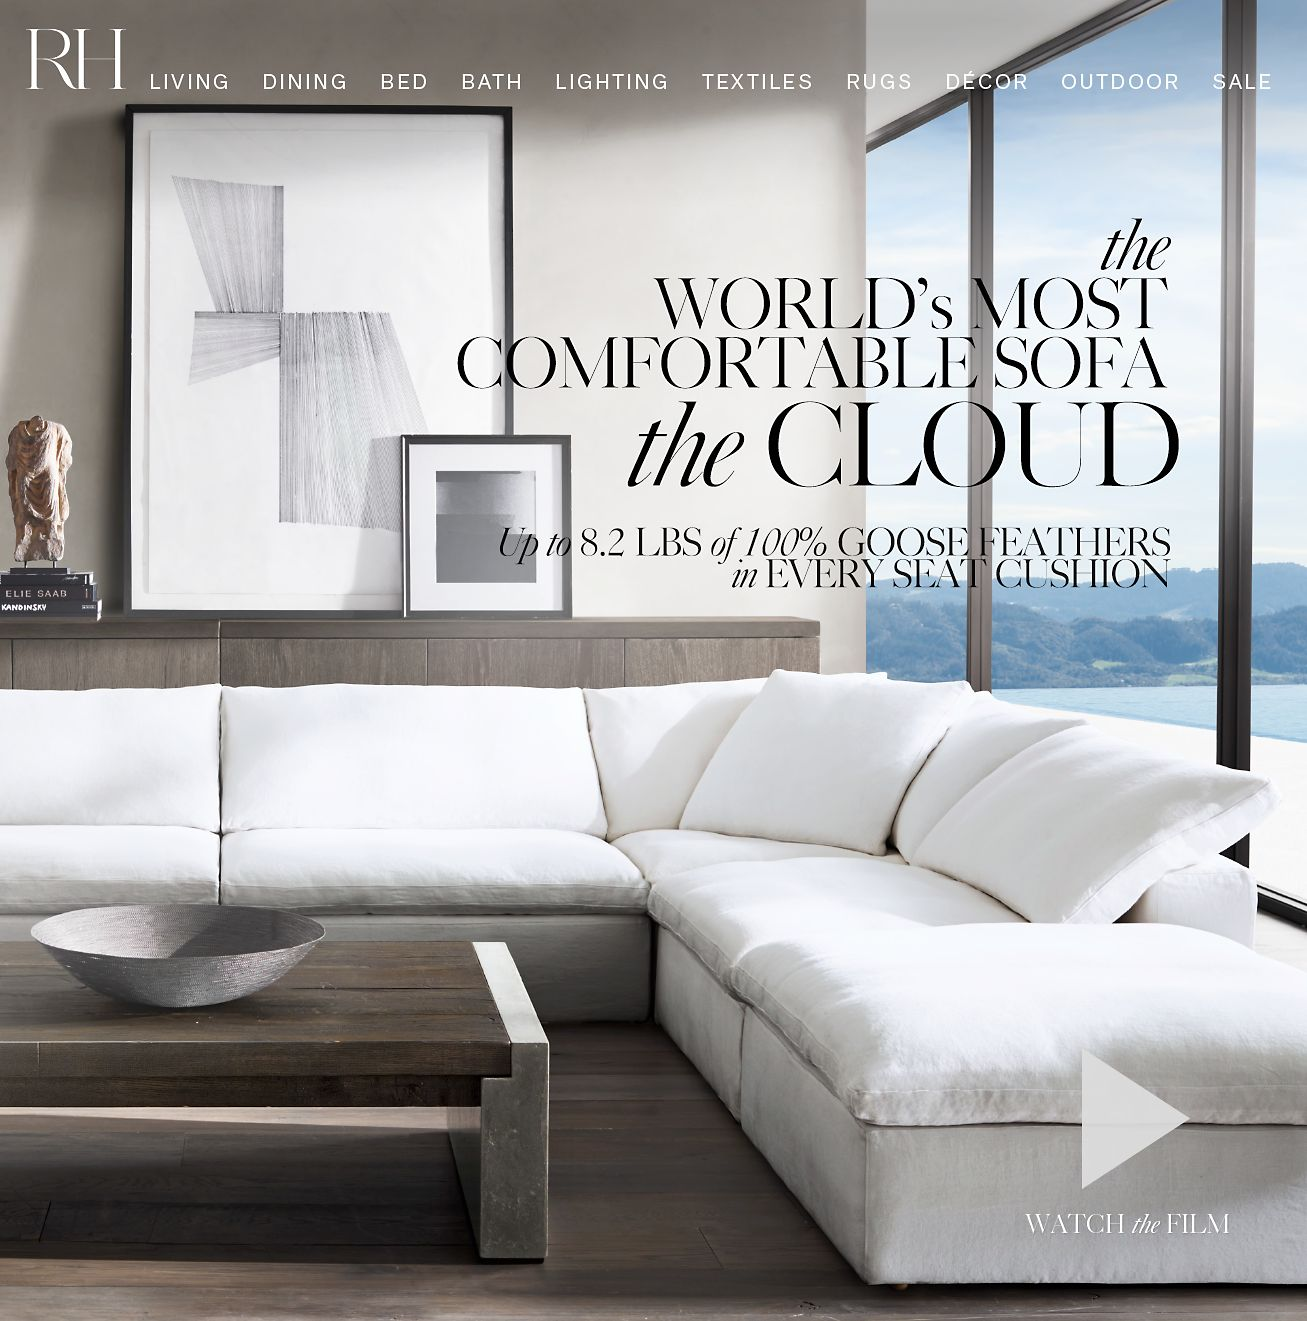 Rh Cloud Sofa Restoration Hardware The Cloud The World 39s Most